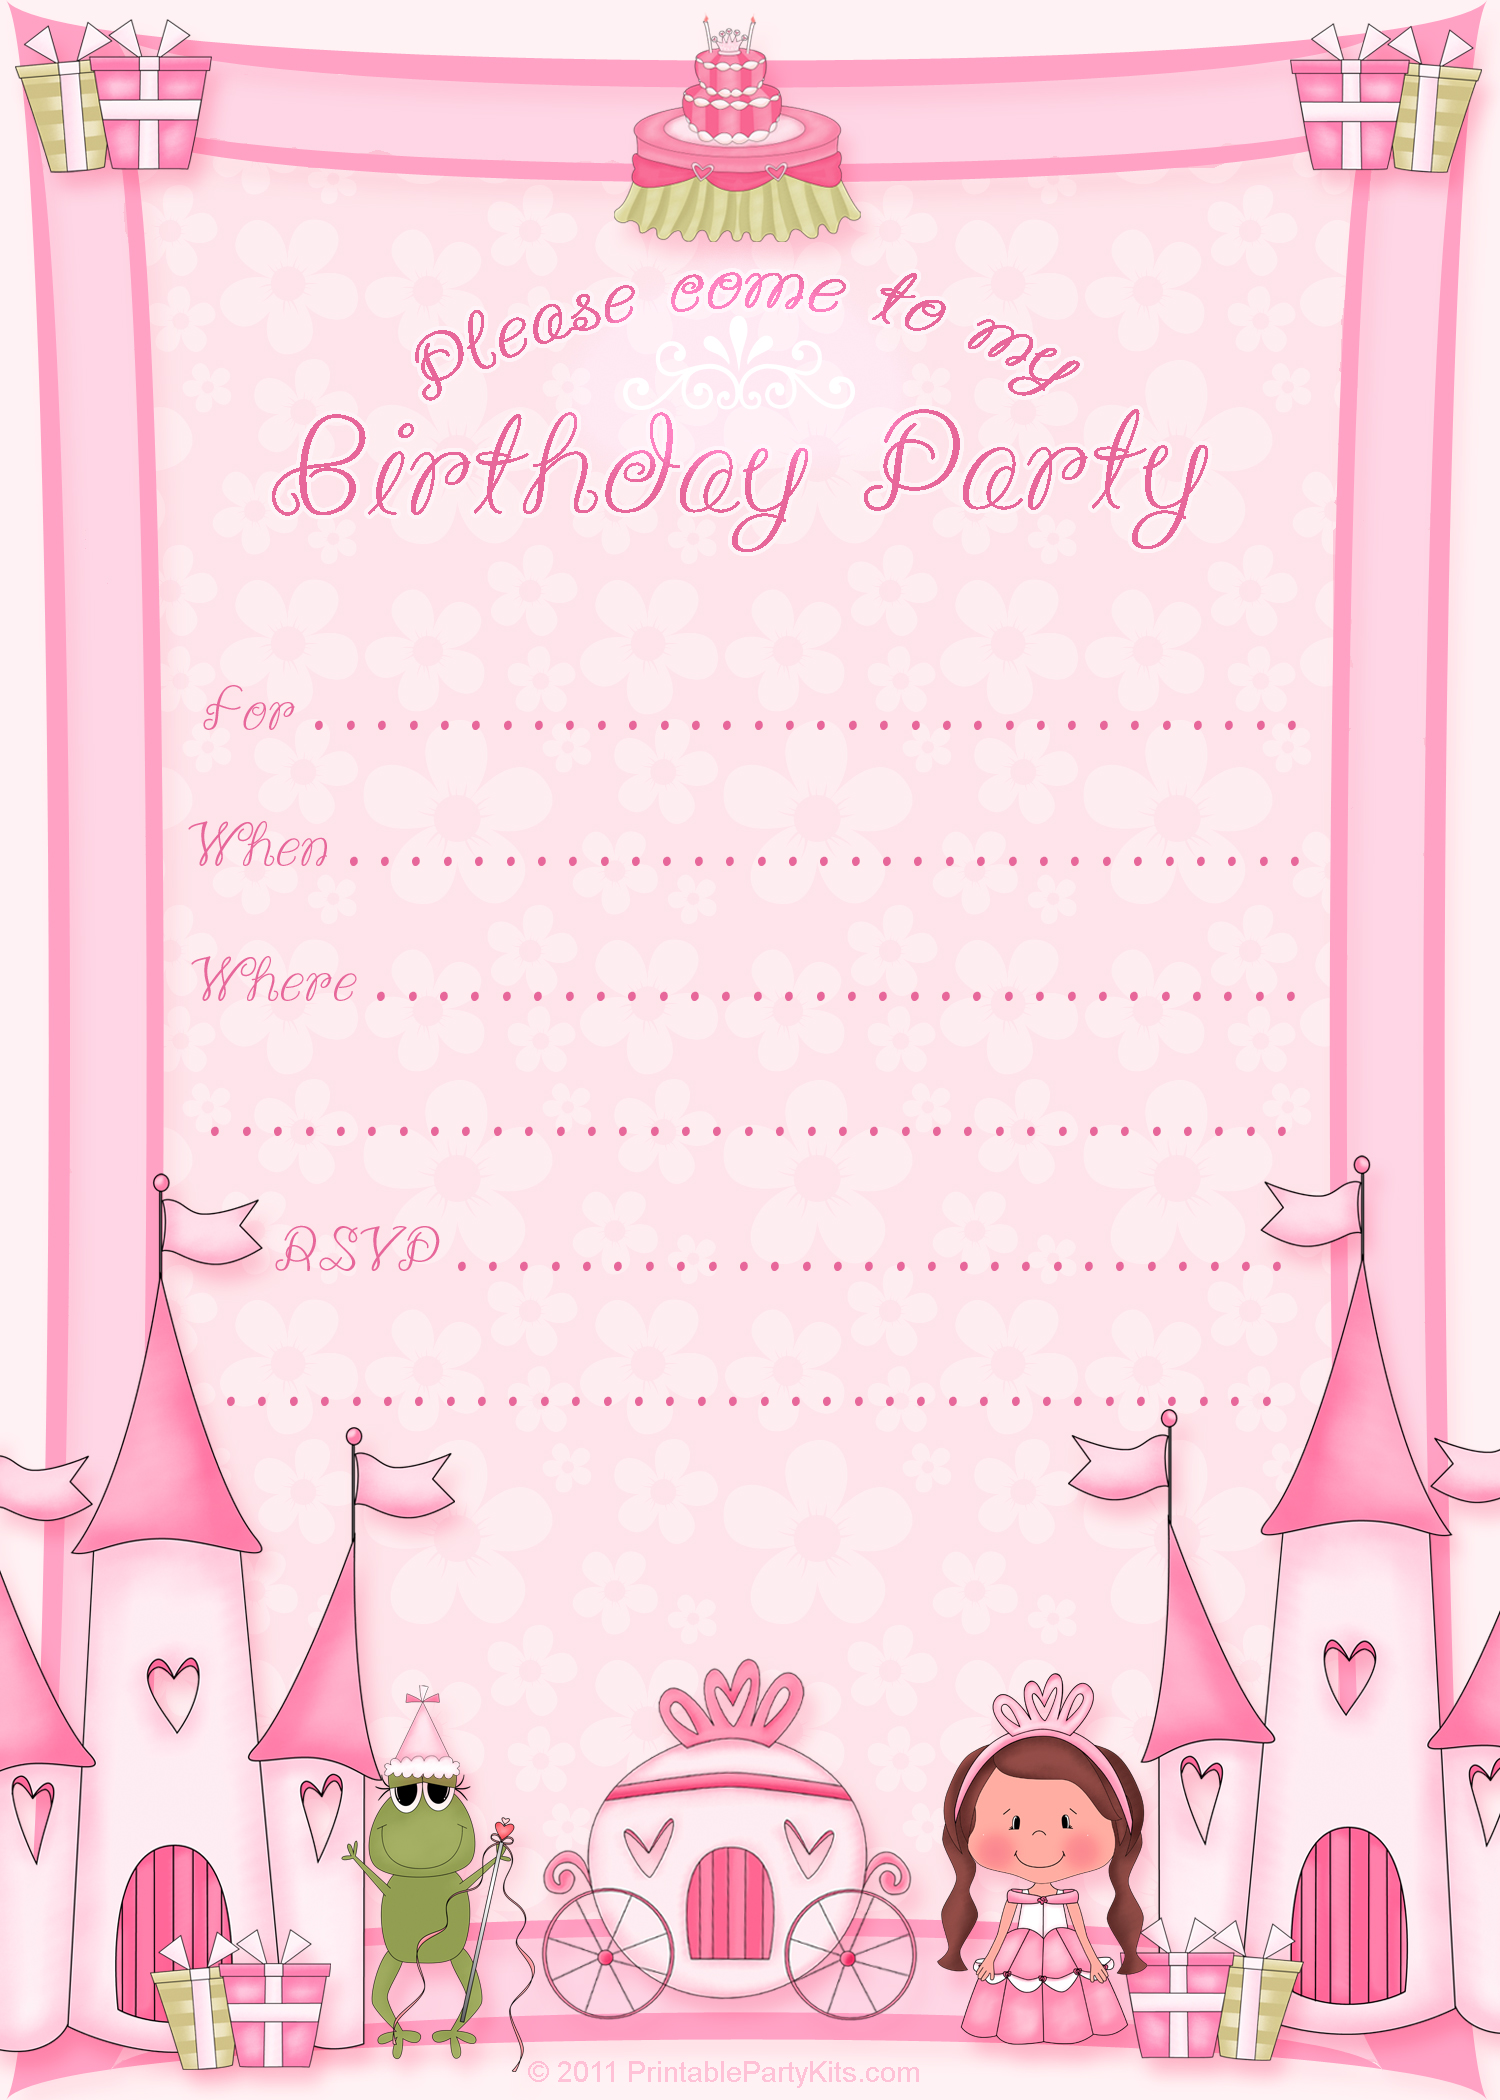 free printable birthday invitation maker ; Birthday-Party-Invitation-Images-Free-for-a-lovely-birthday-Invitation-design-with-lovely-layout-14